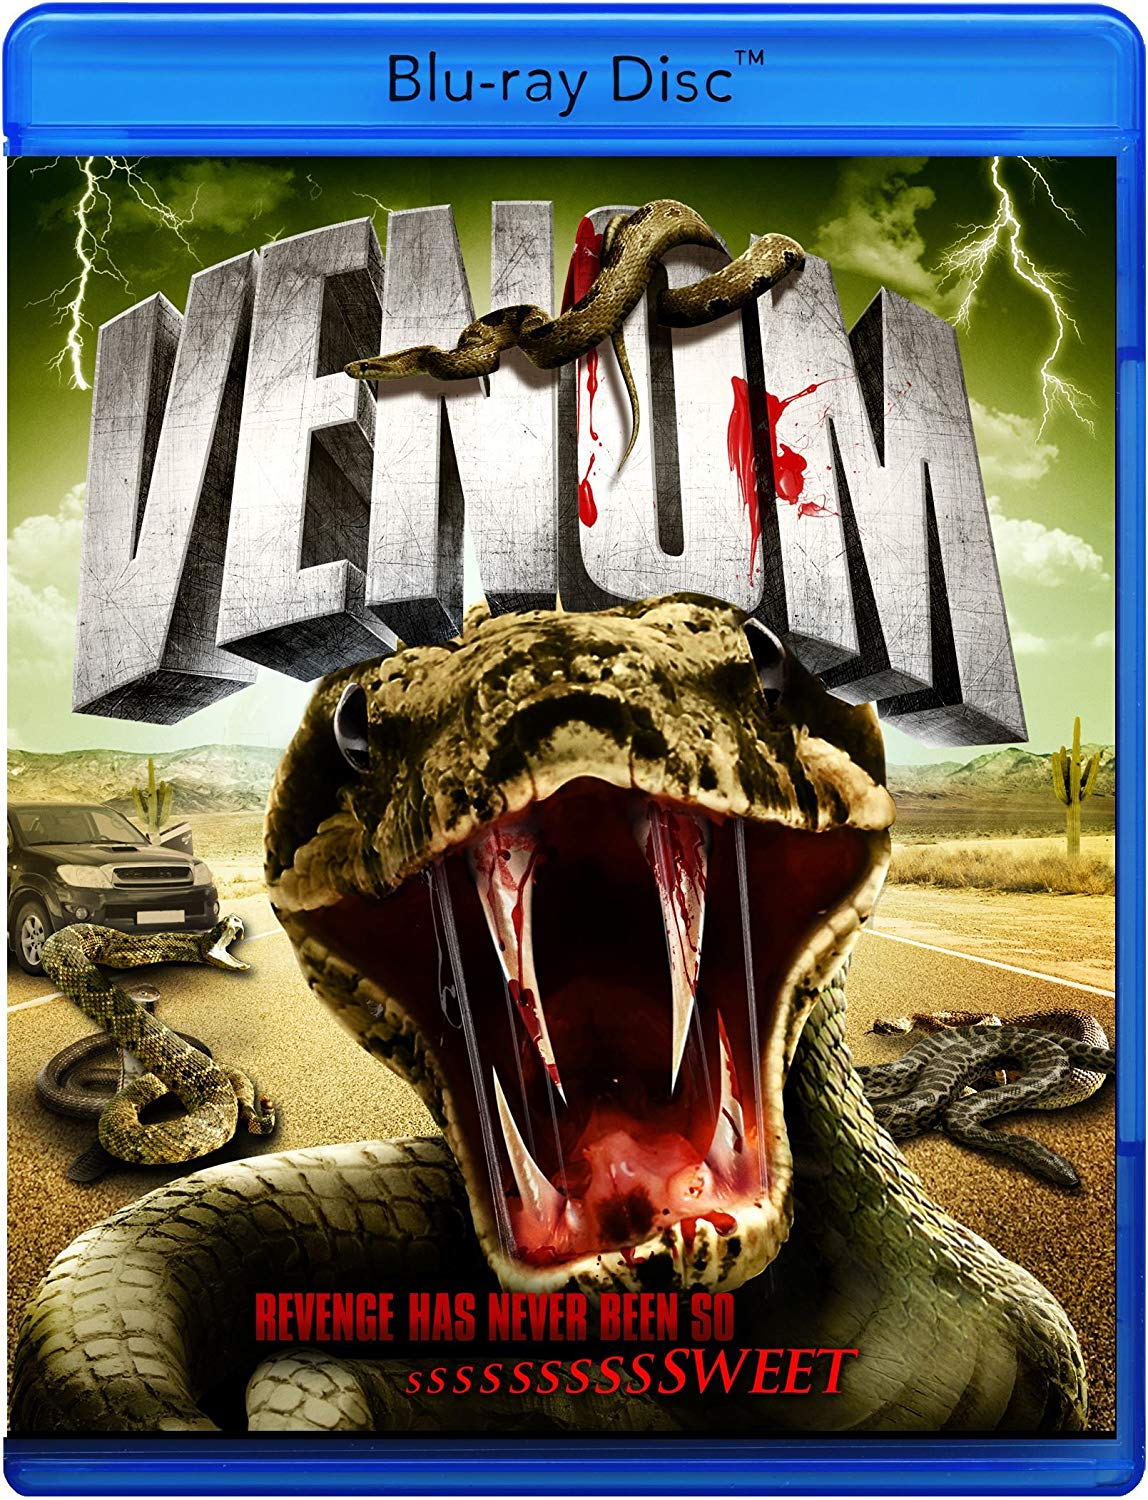 Venom [Monster Movie] - Venom